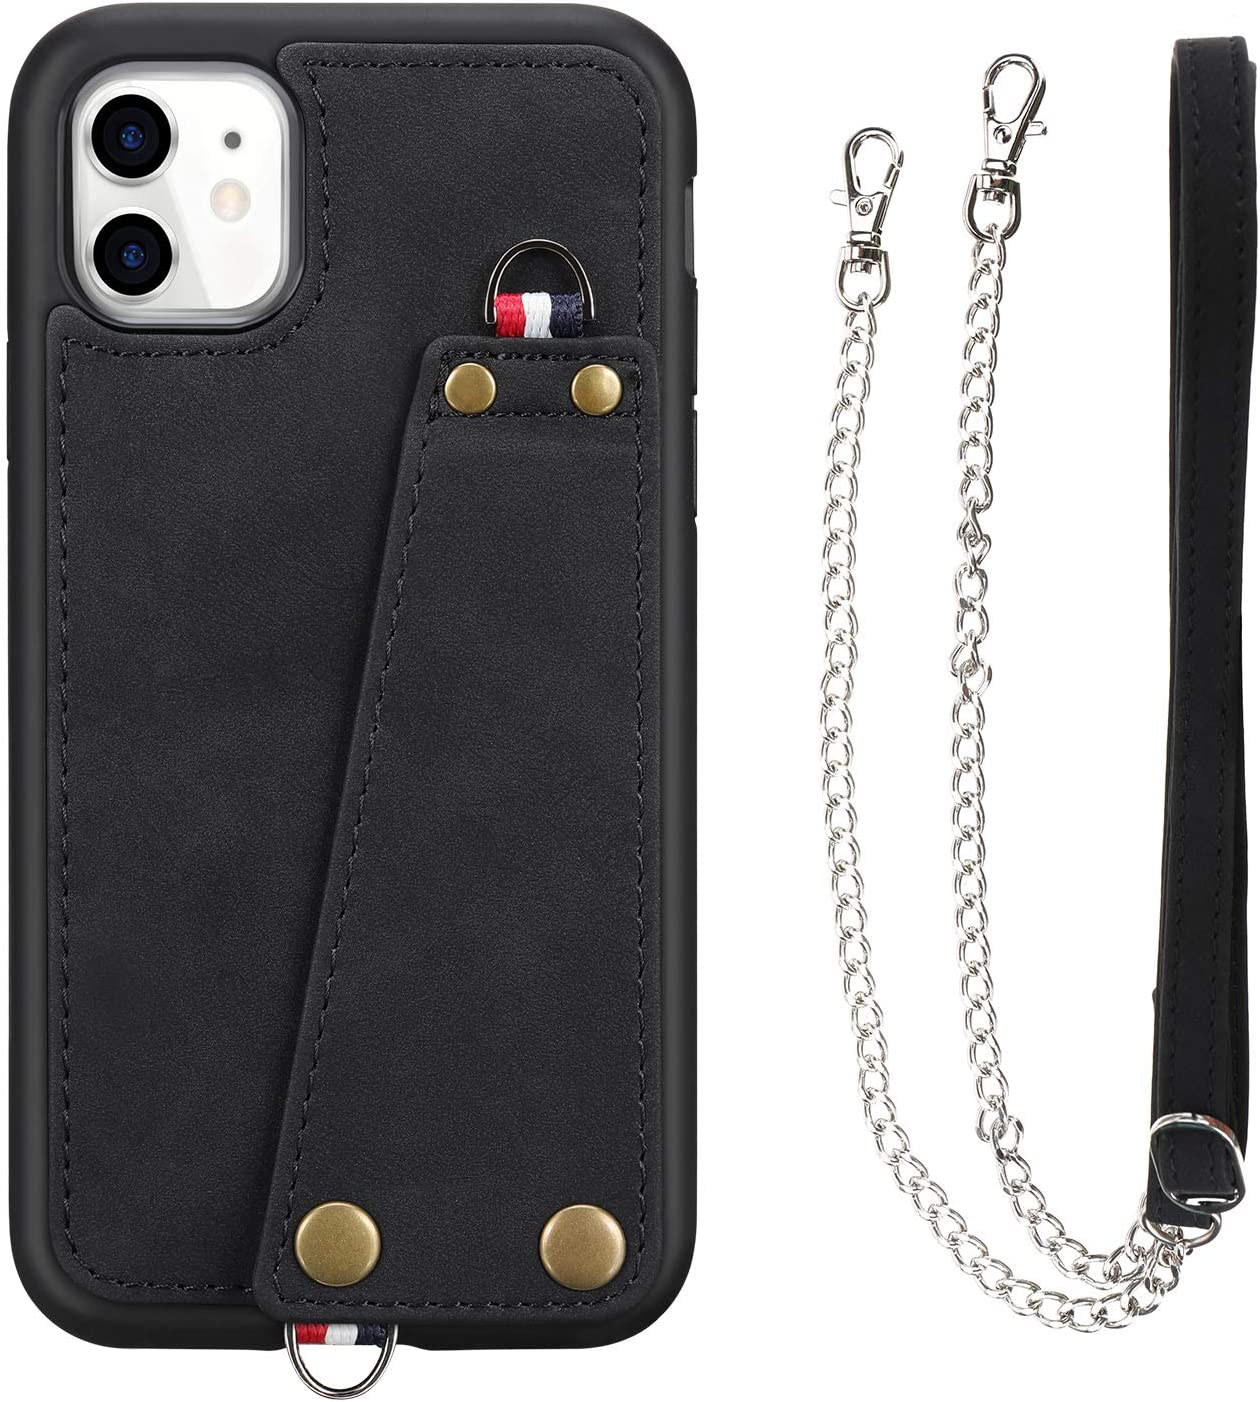 JISON21 iPhone 11 case with Lanyard,iPhone 11 Case Crossbody Chain with Credit Card Holder Slot Adjustable Detachable Strap Leather Case Cover for Apple iPhone 11 6.1 inch 2019 (Black)